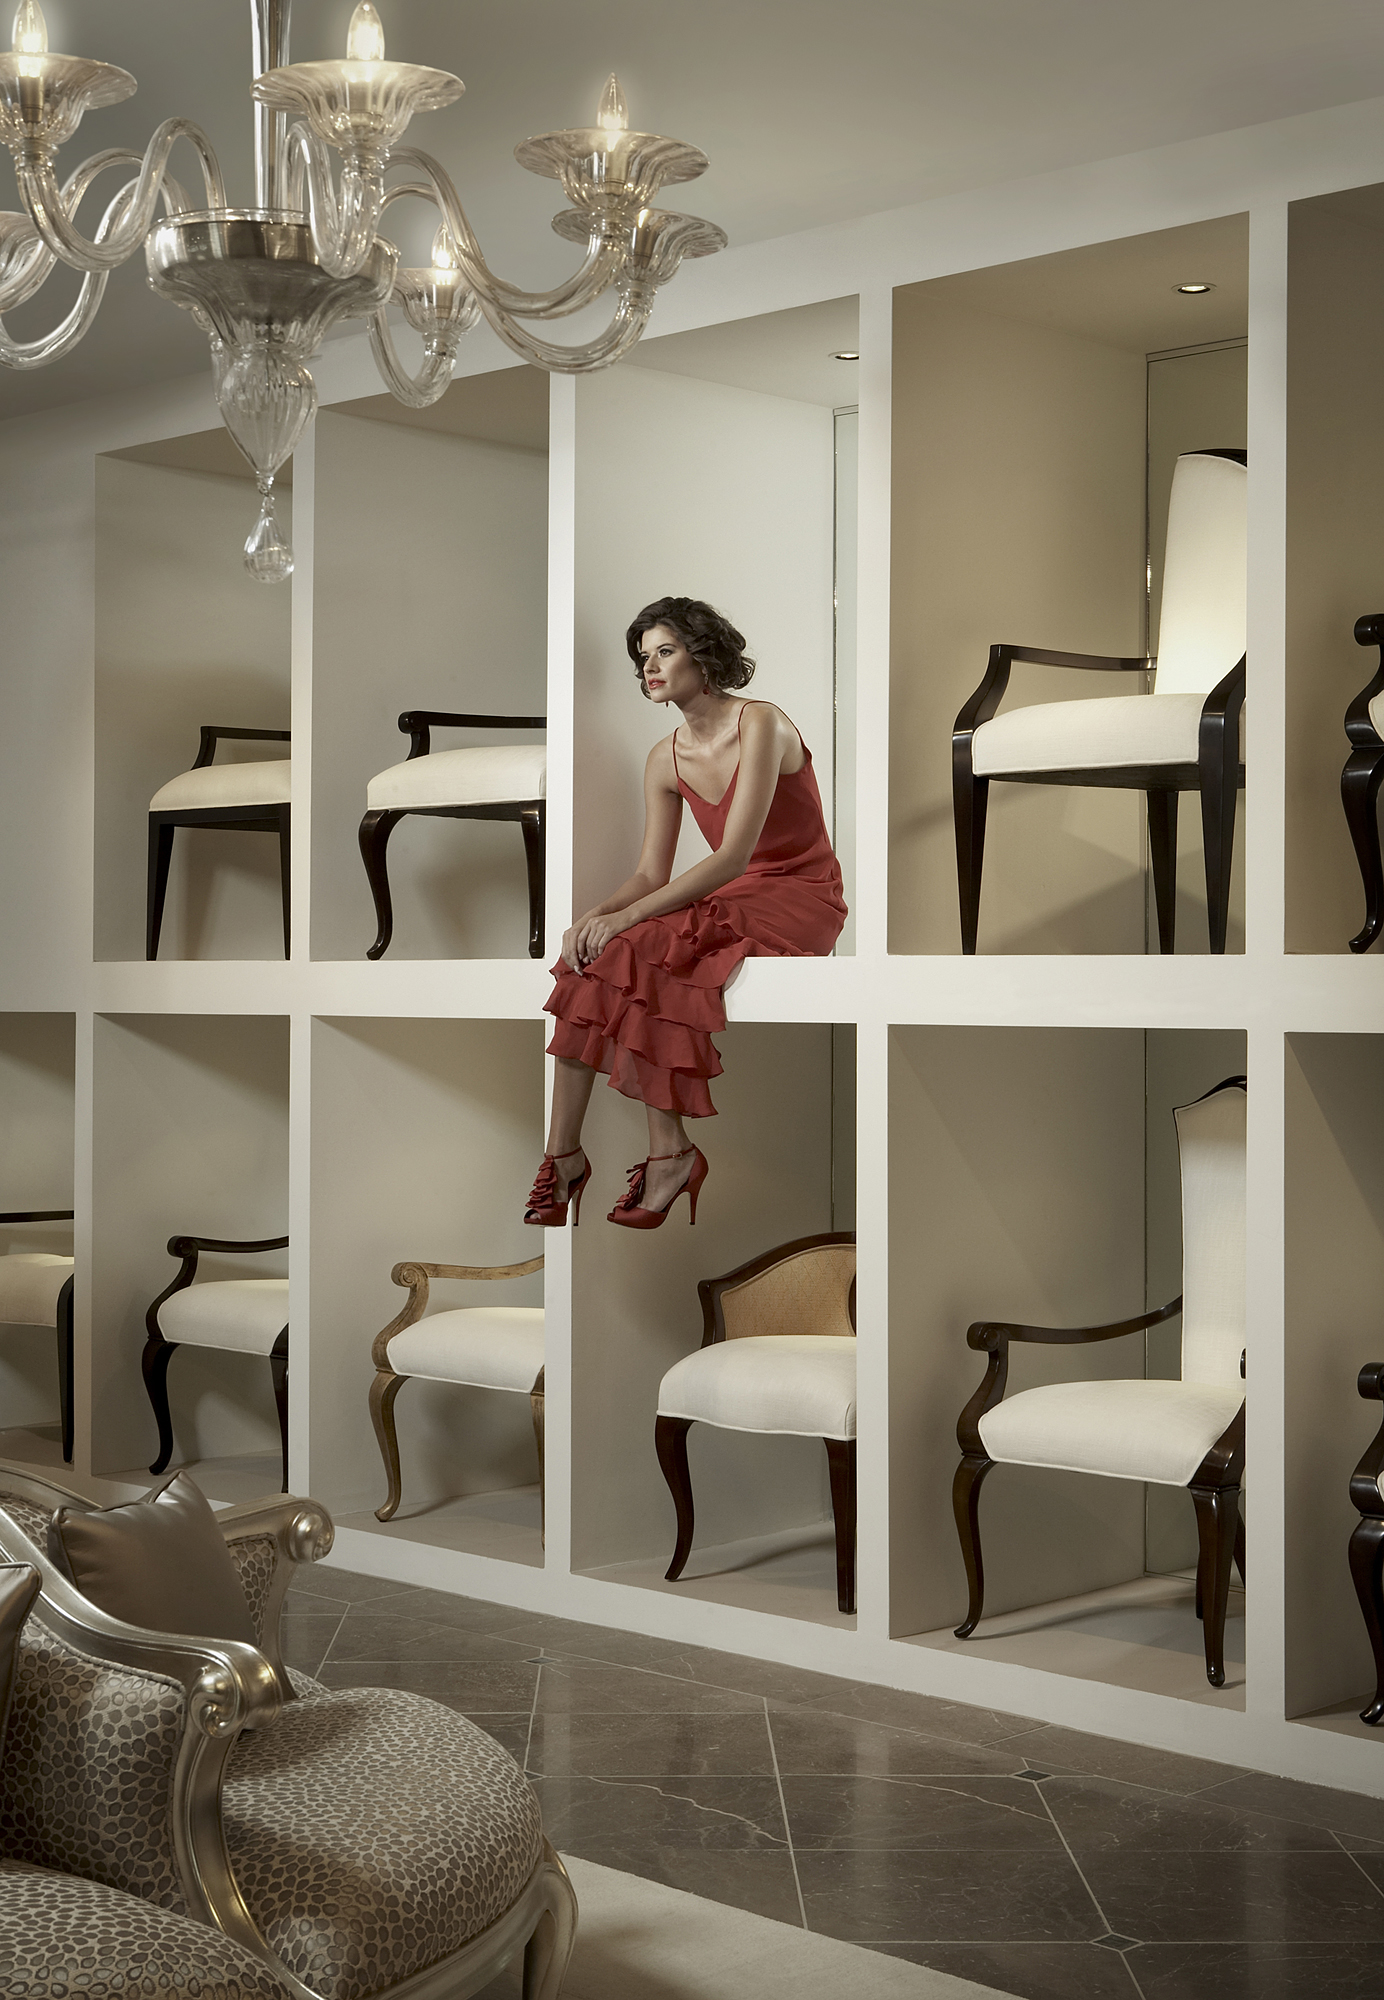 Model sitting in a furniture gallery